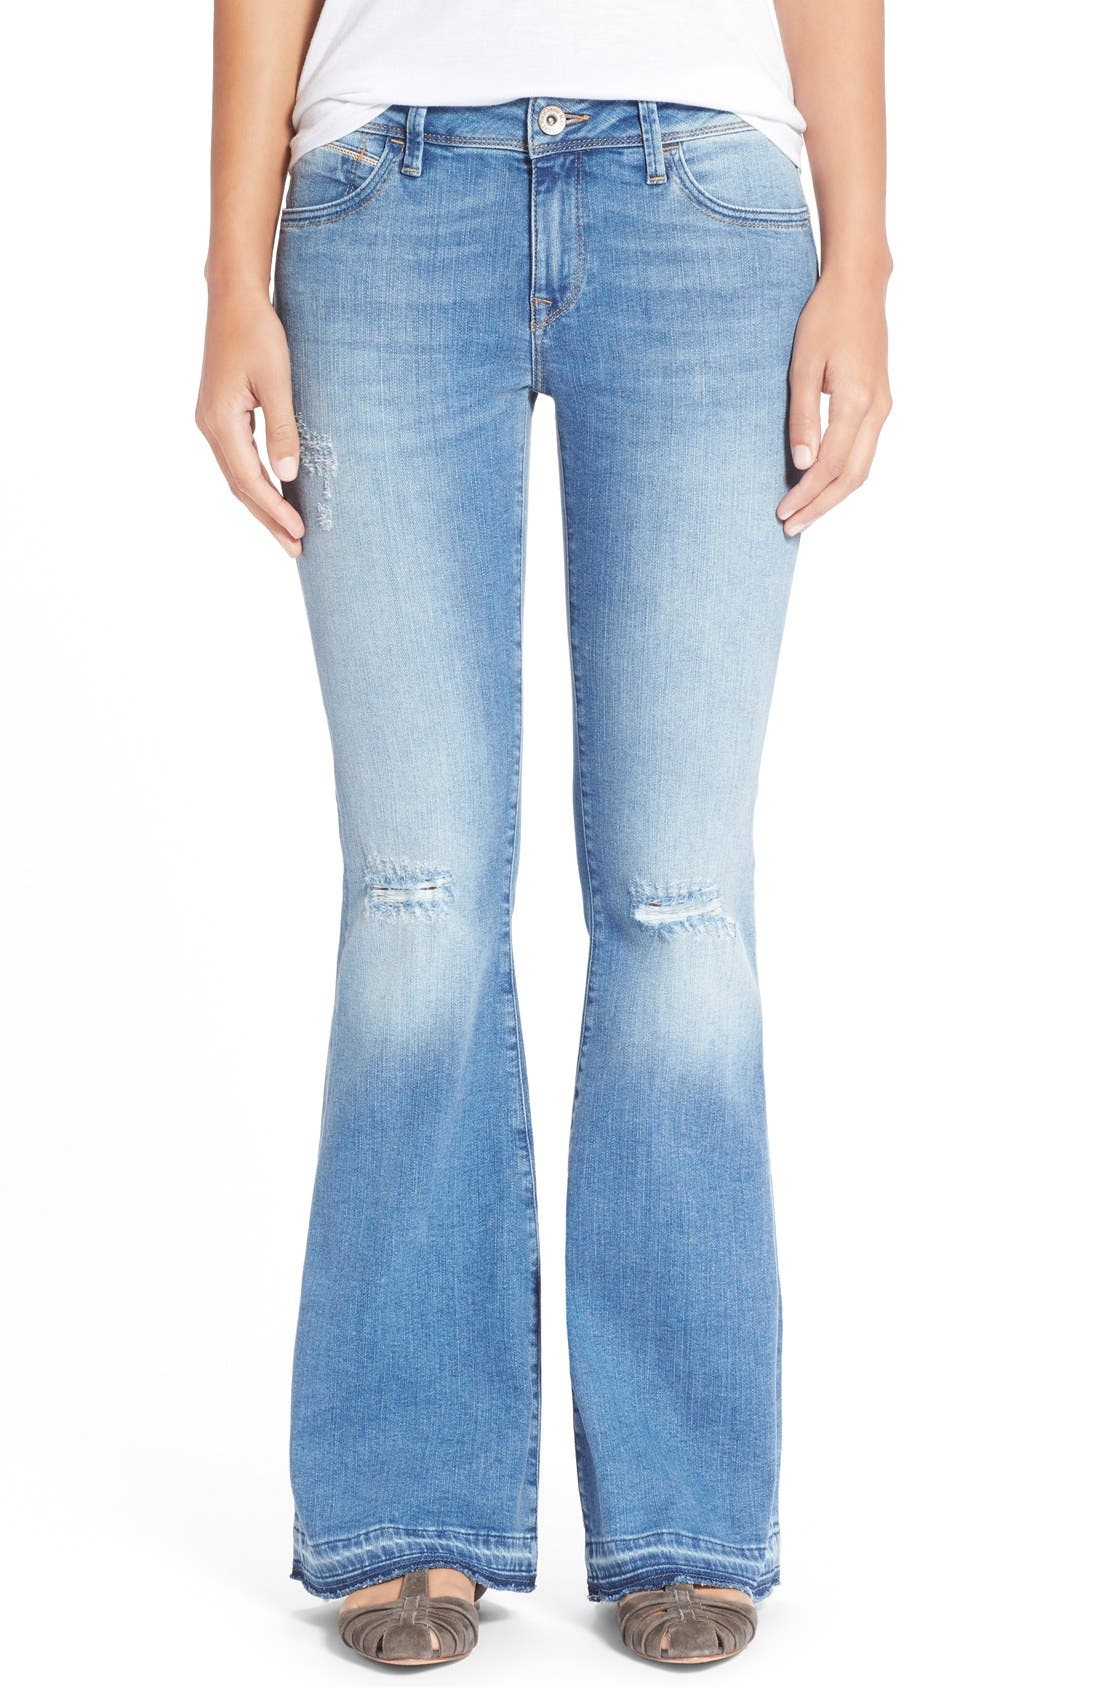 'Peace' Stretch Flare Leg Jeans,                             Main thumbnail 1, color,                             Light Ripped